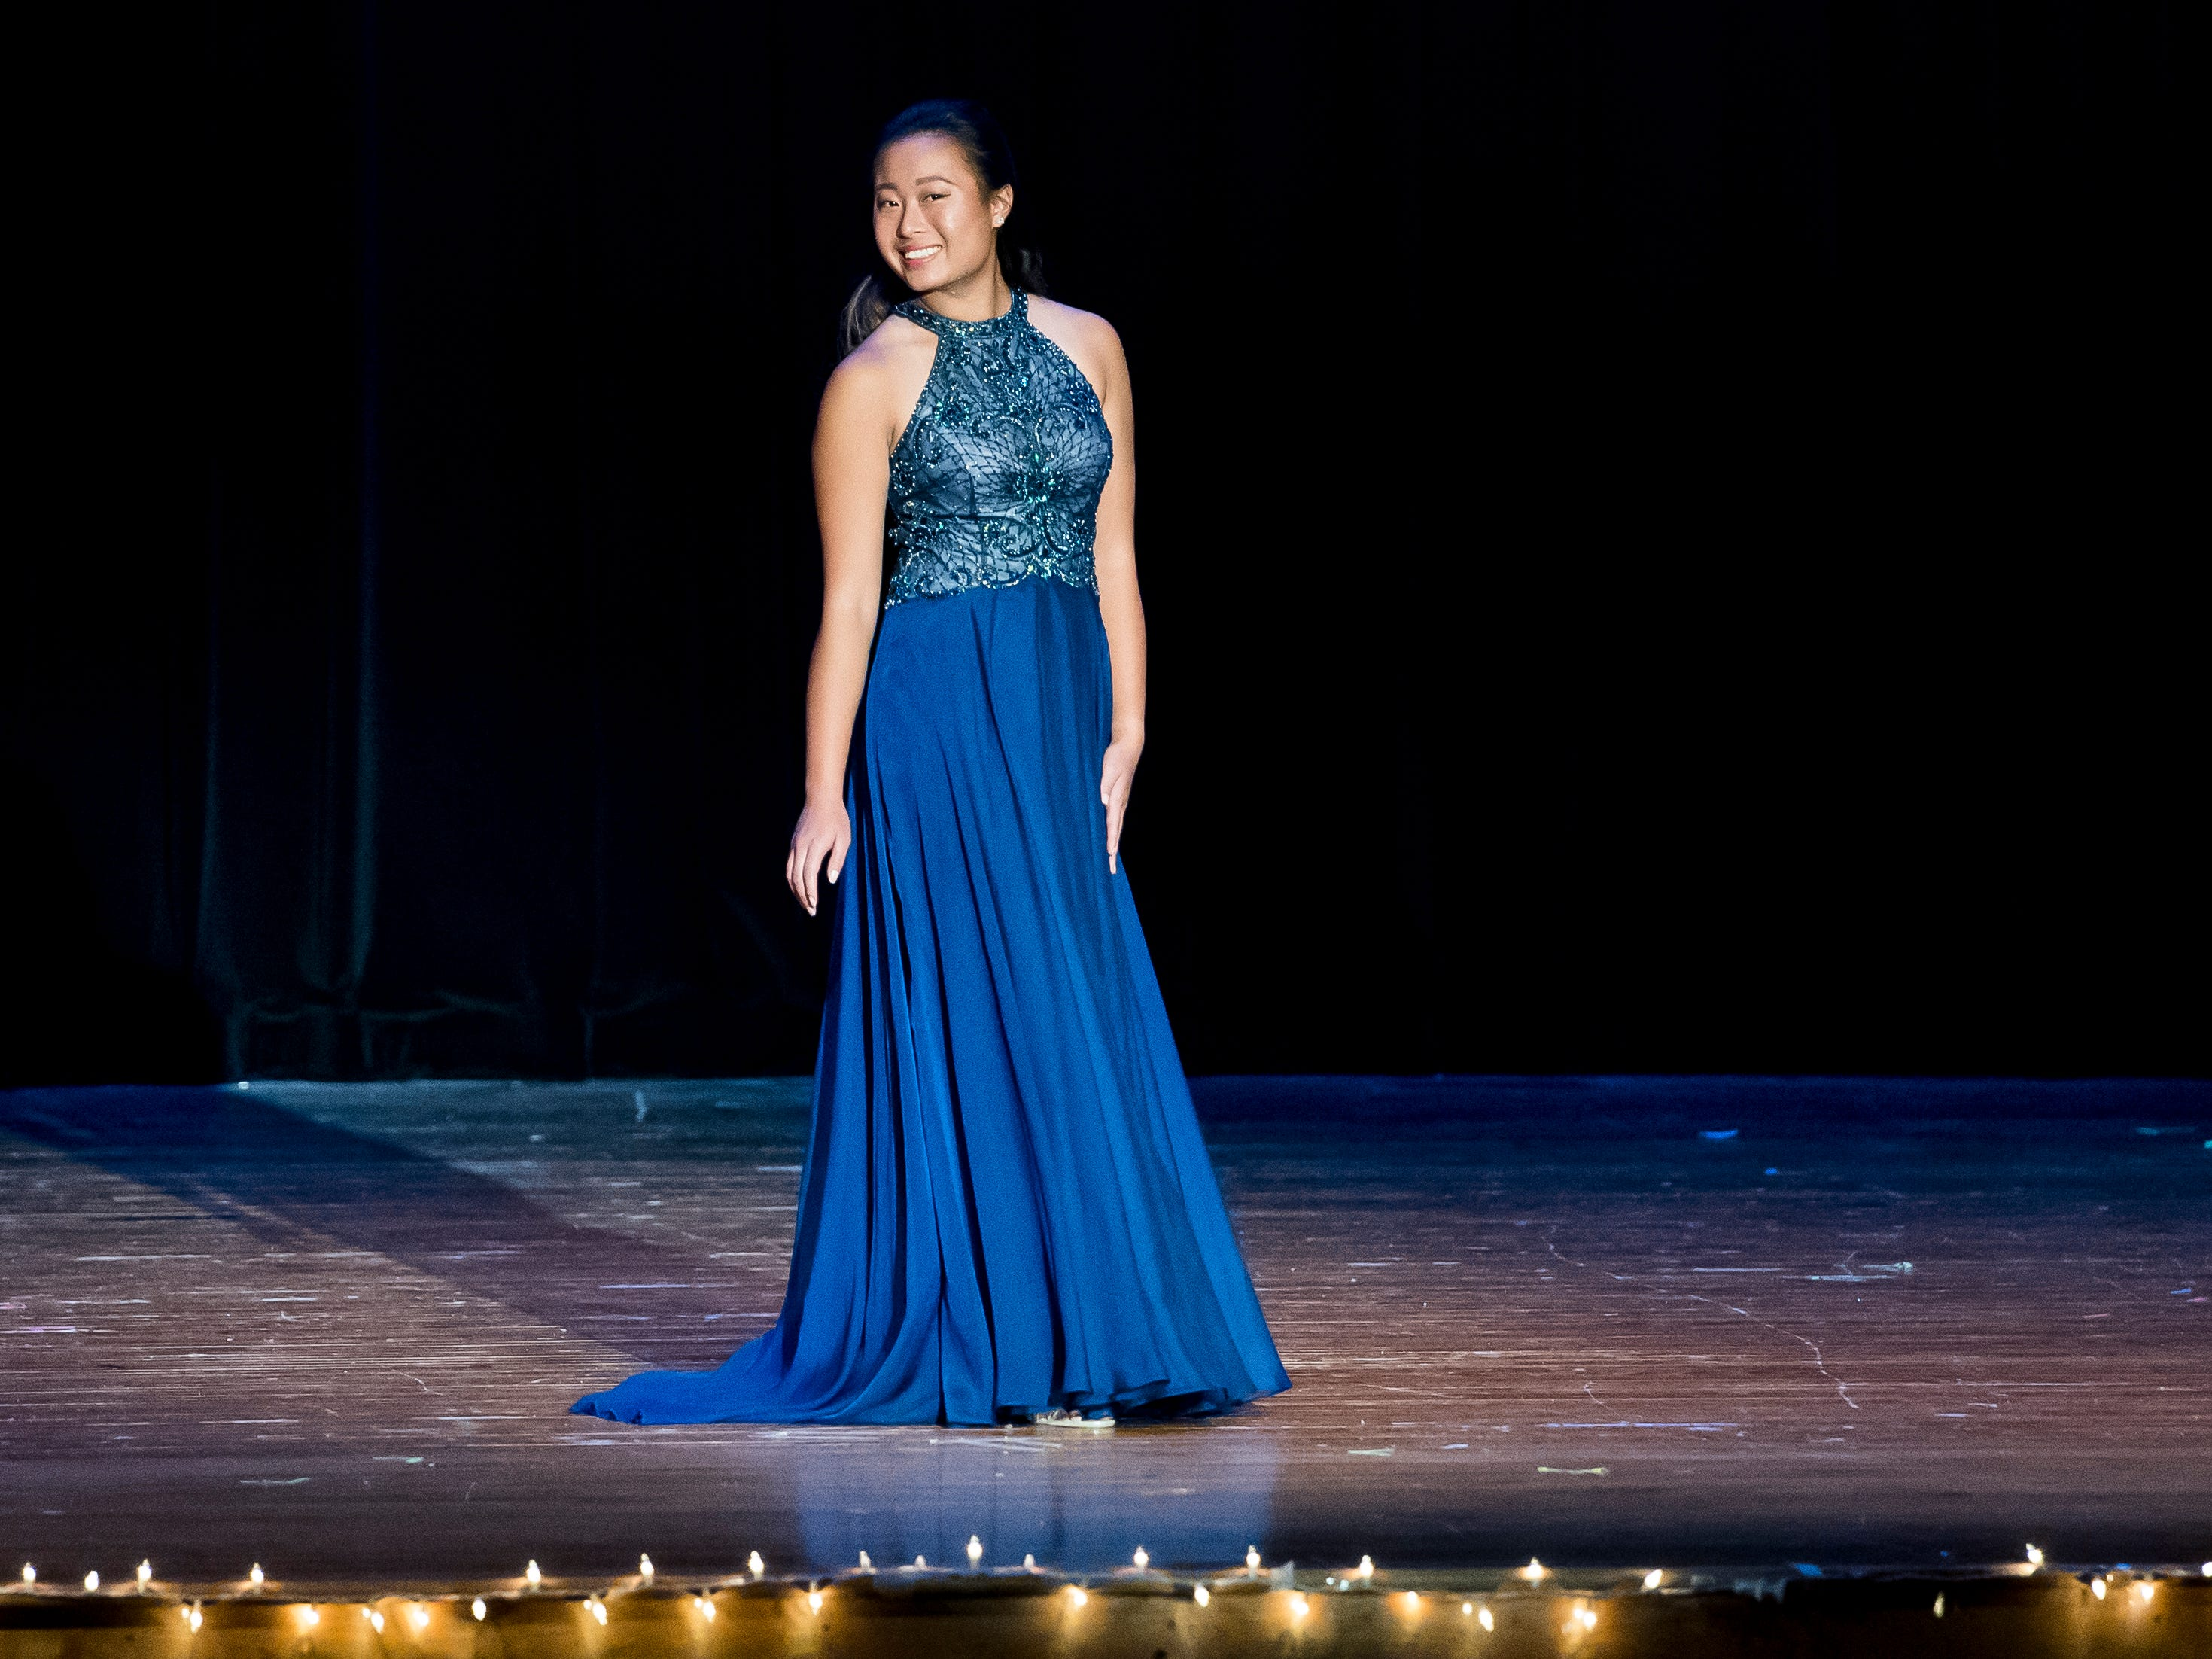 Karen Yang walks on stage during the evening gown competition in the 50th Miss Hanover Area pageant on Monday, October 22, 2018.